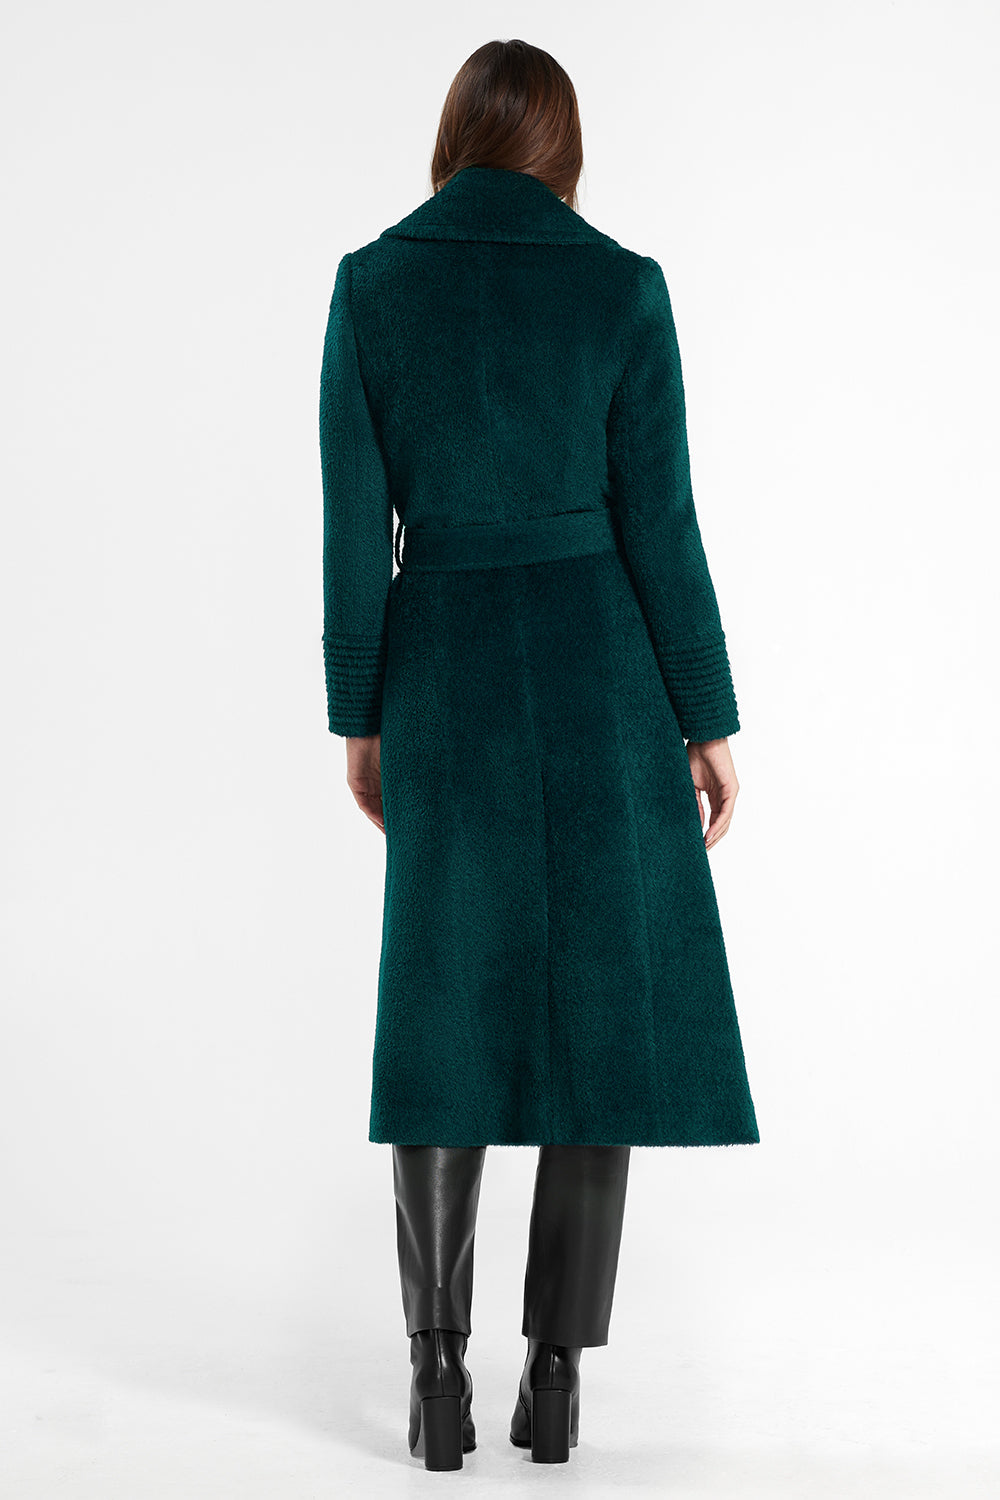 Sentaler Bouclé Alpaca Long Notched Collar Wrap Coat featured in Bouclé Alpaca and available in Emerald Green. Seen from back.